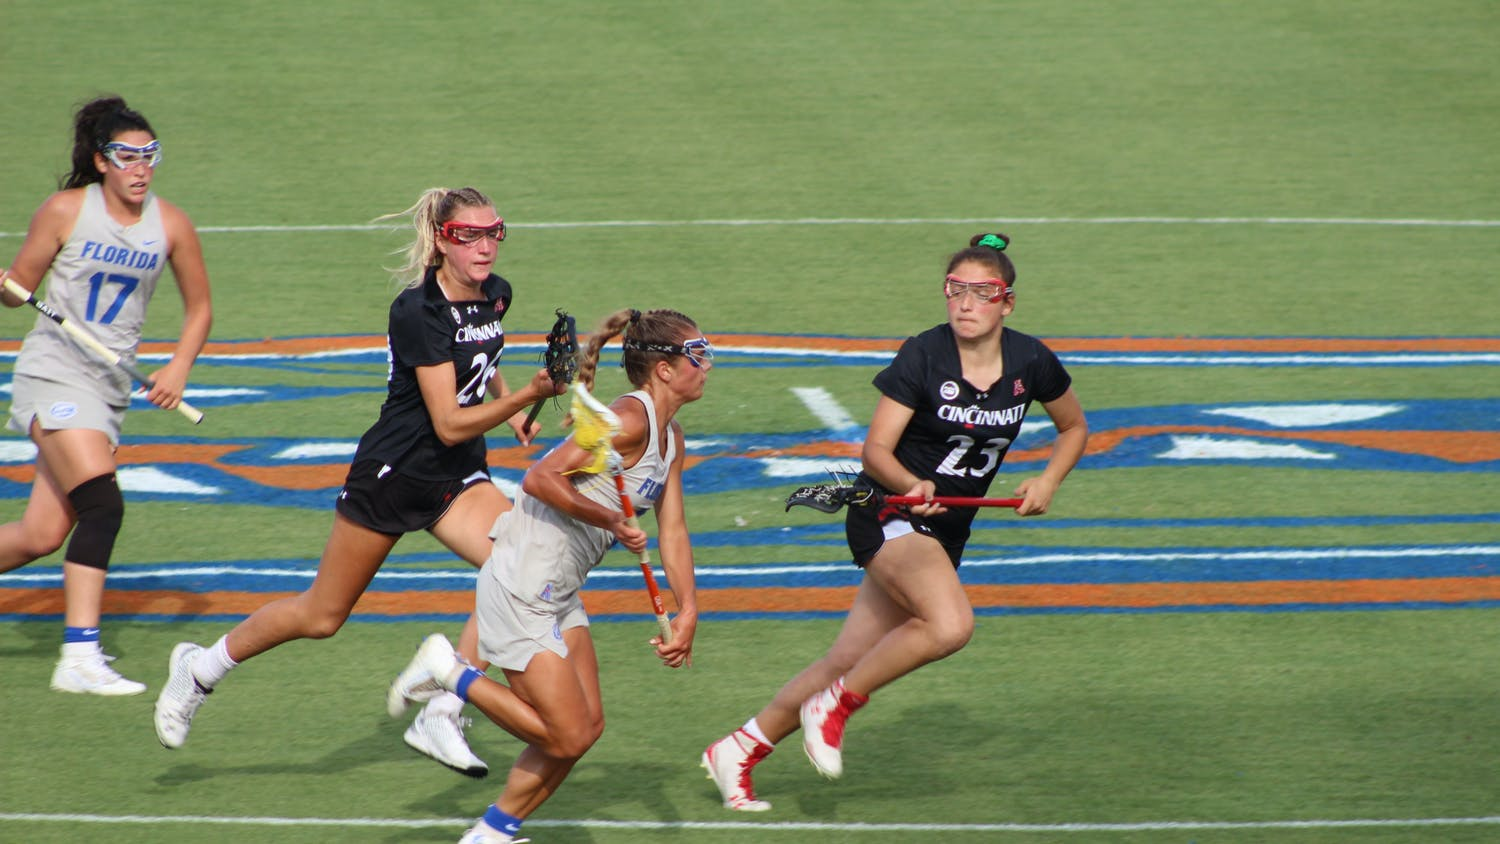 Emily Heller races down the field for Florida against Cincinnati on May 6.